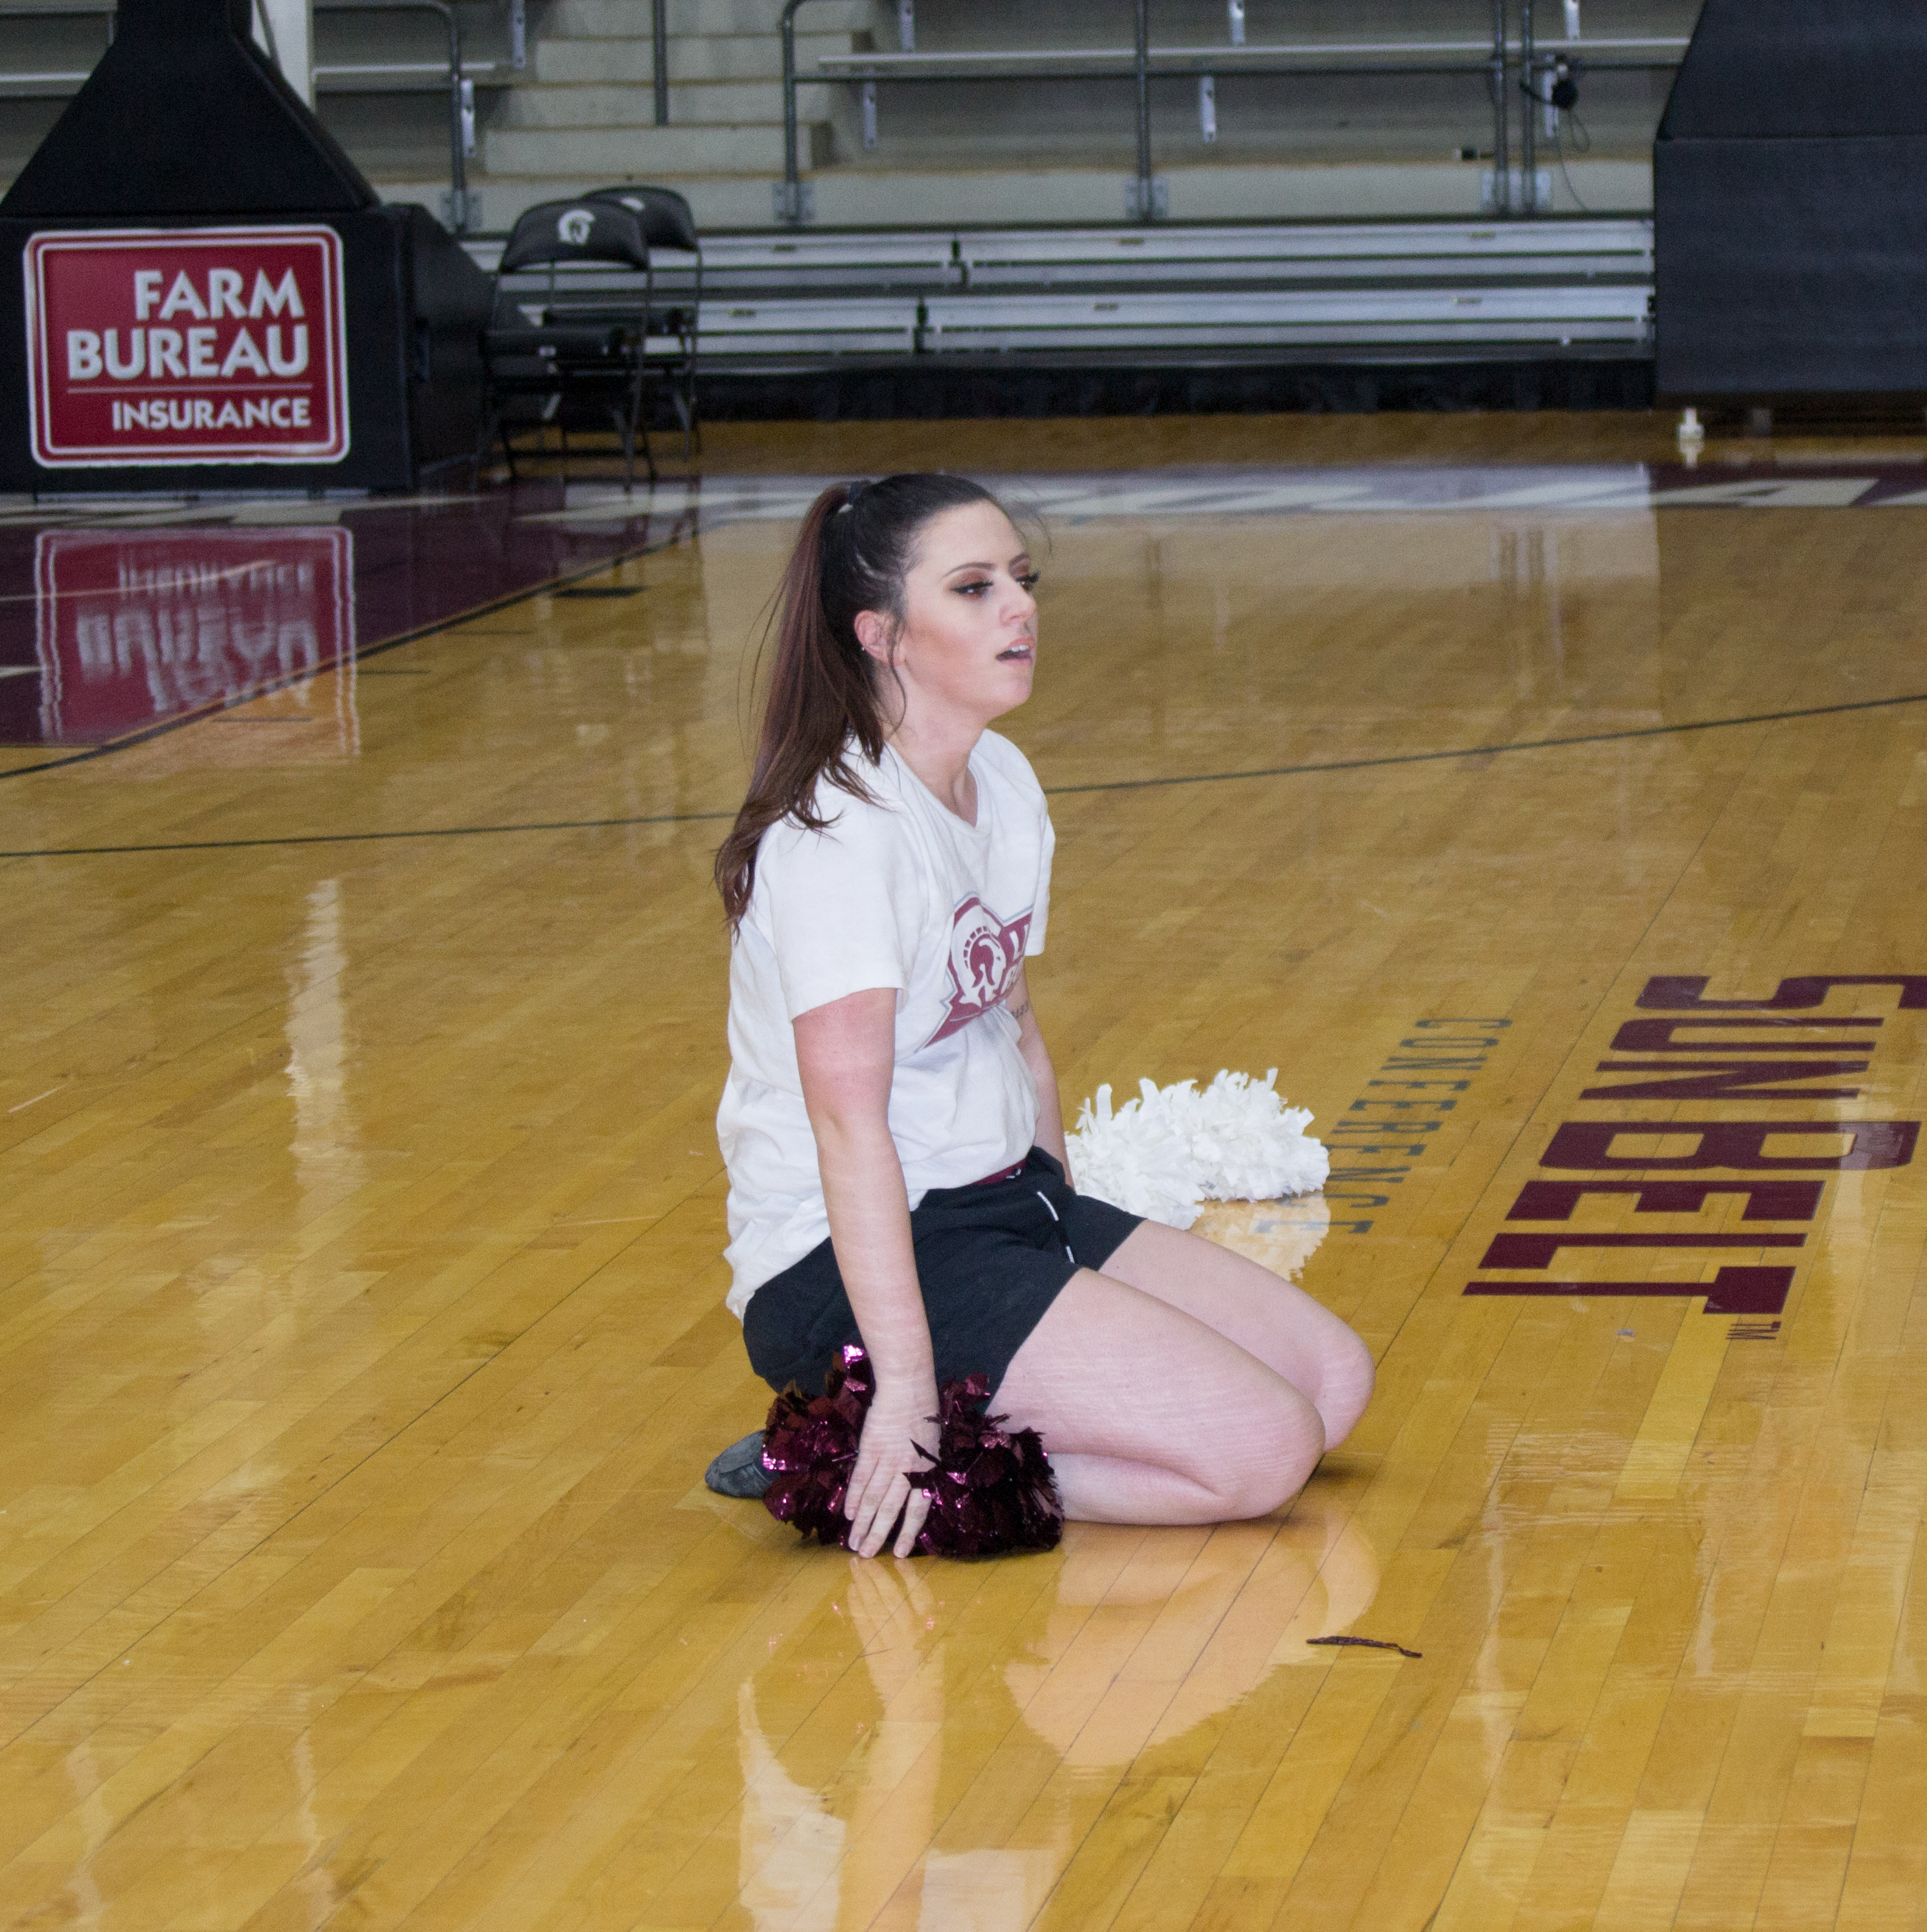 UA Little Rock student-athlete Jayme Rash takes a breather after practicing dance routine.